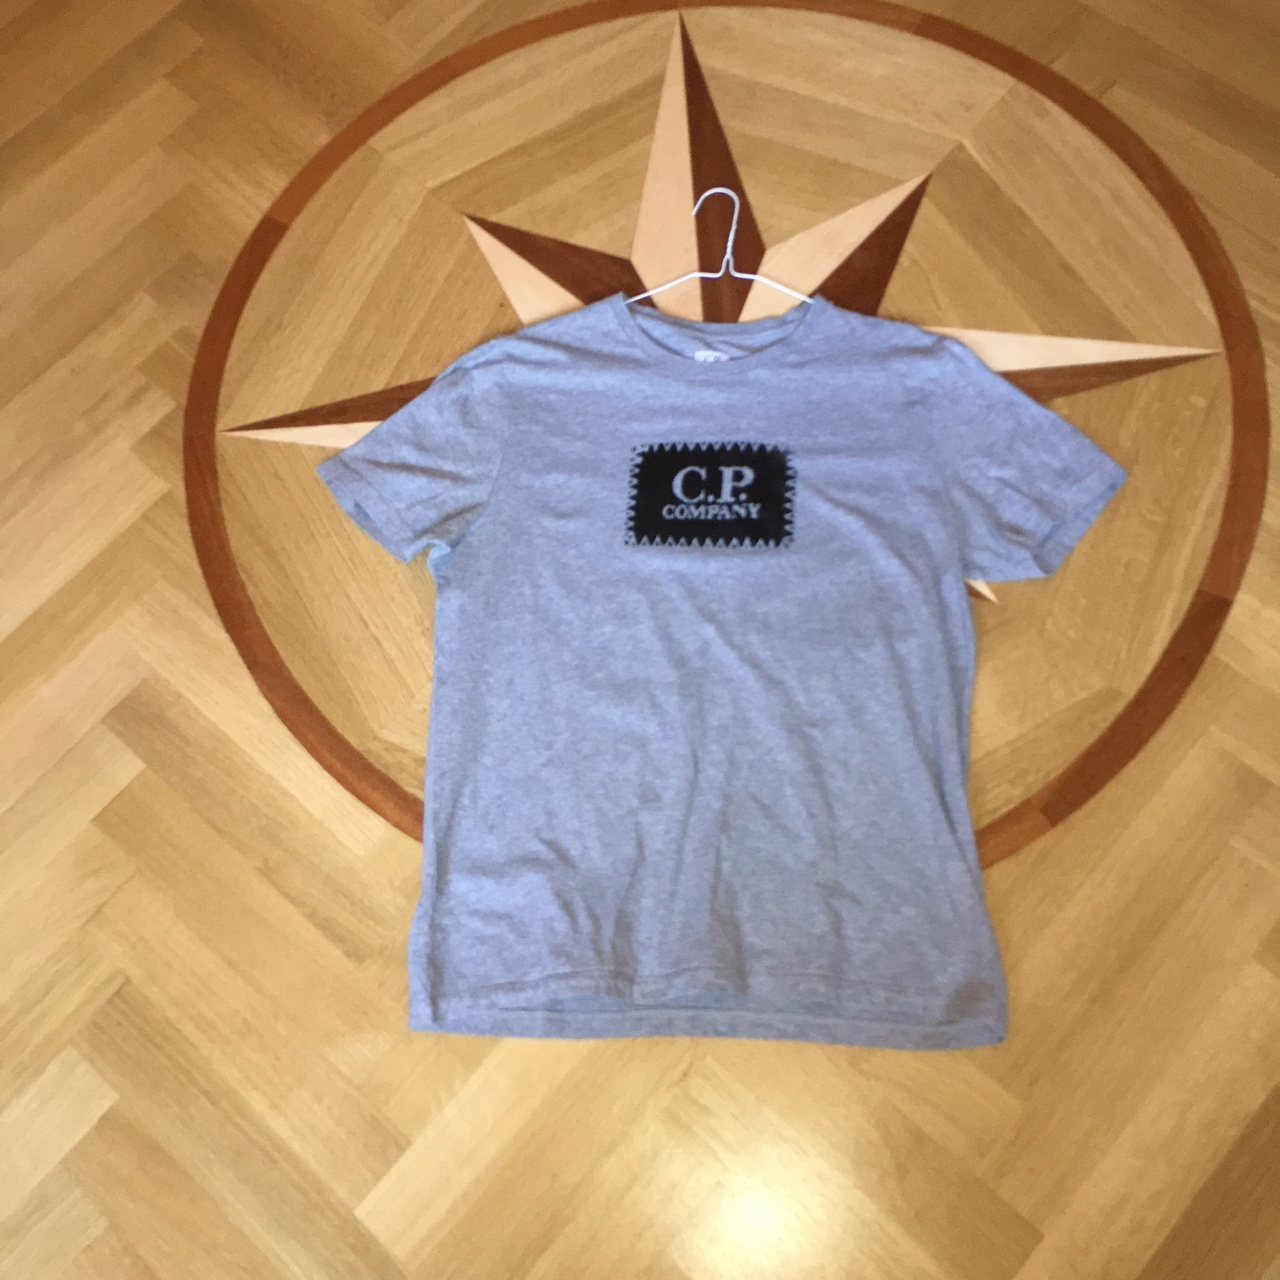 Cp company tshirt size XL however could definitely Depop